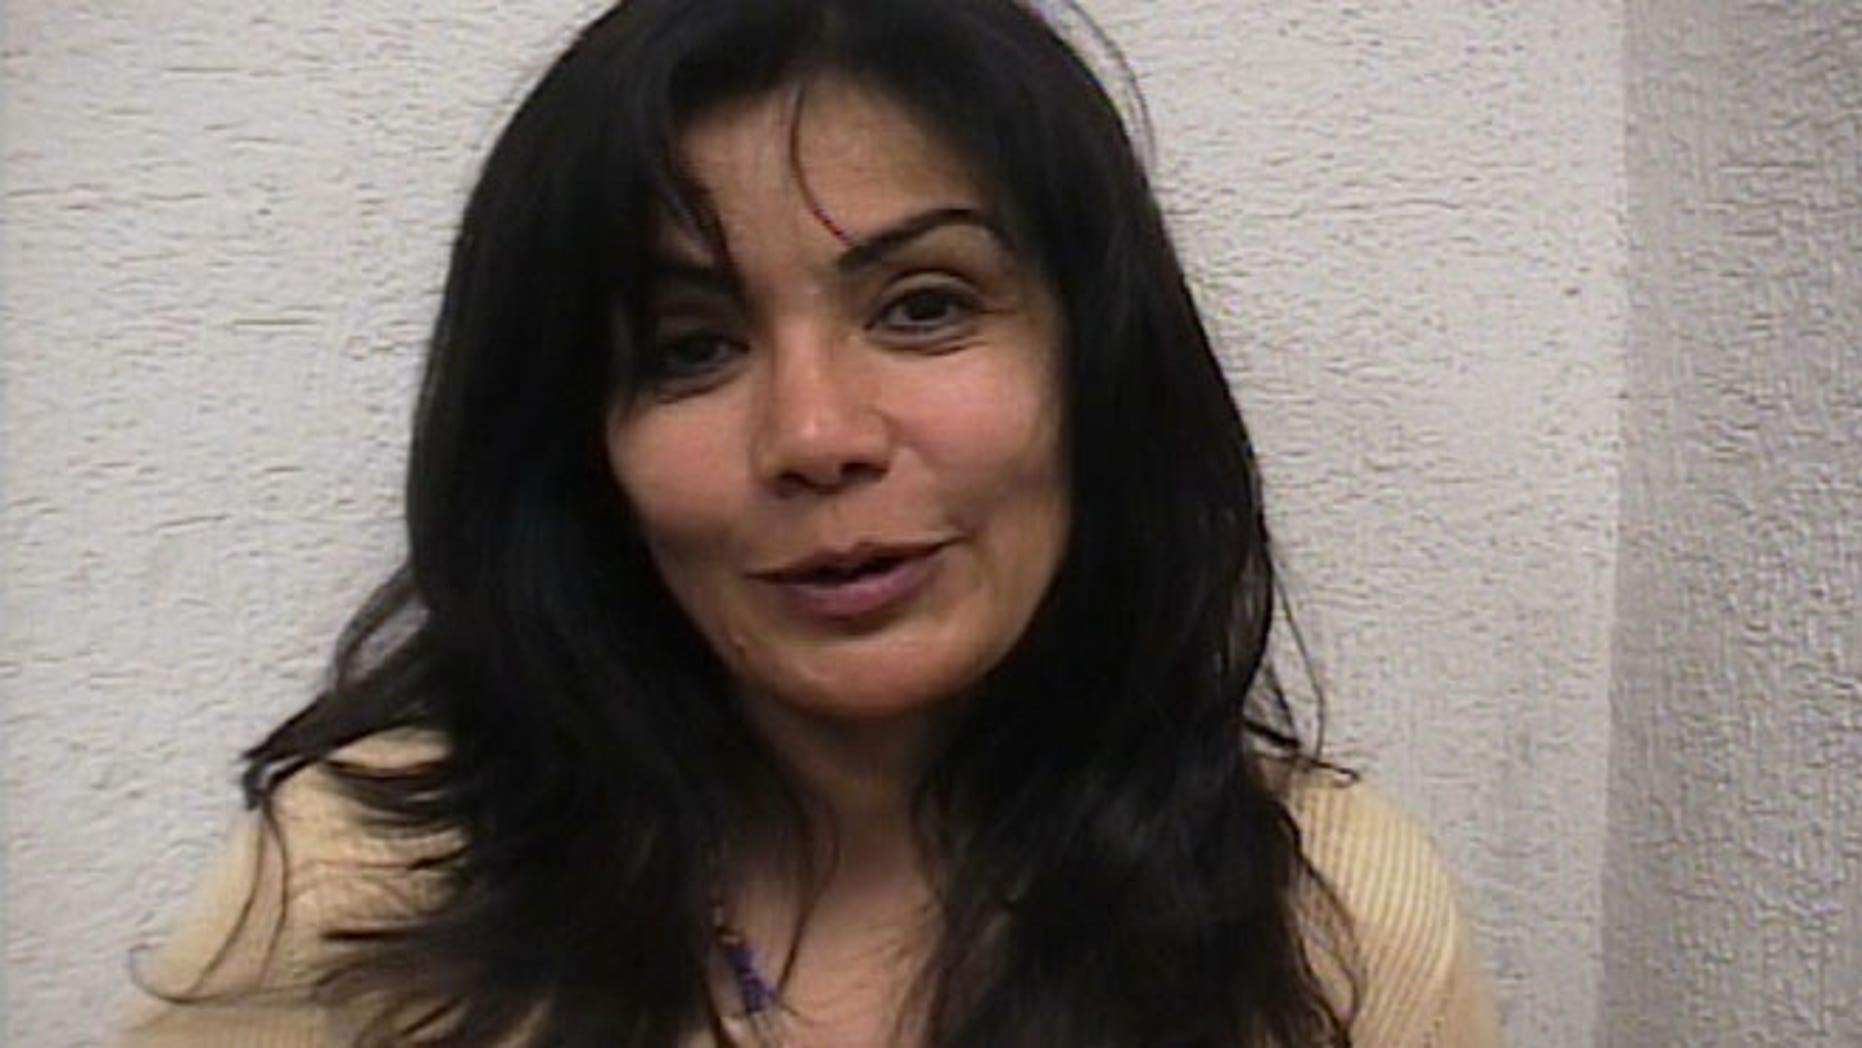 Sandra Avila Beltran smiles after she was arrested by federal agents outside a restaurant in southern Mexico City, Sept. 28, 2007.